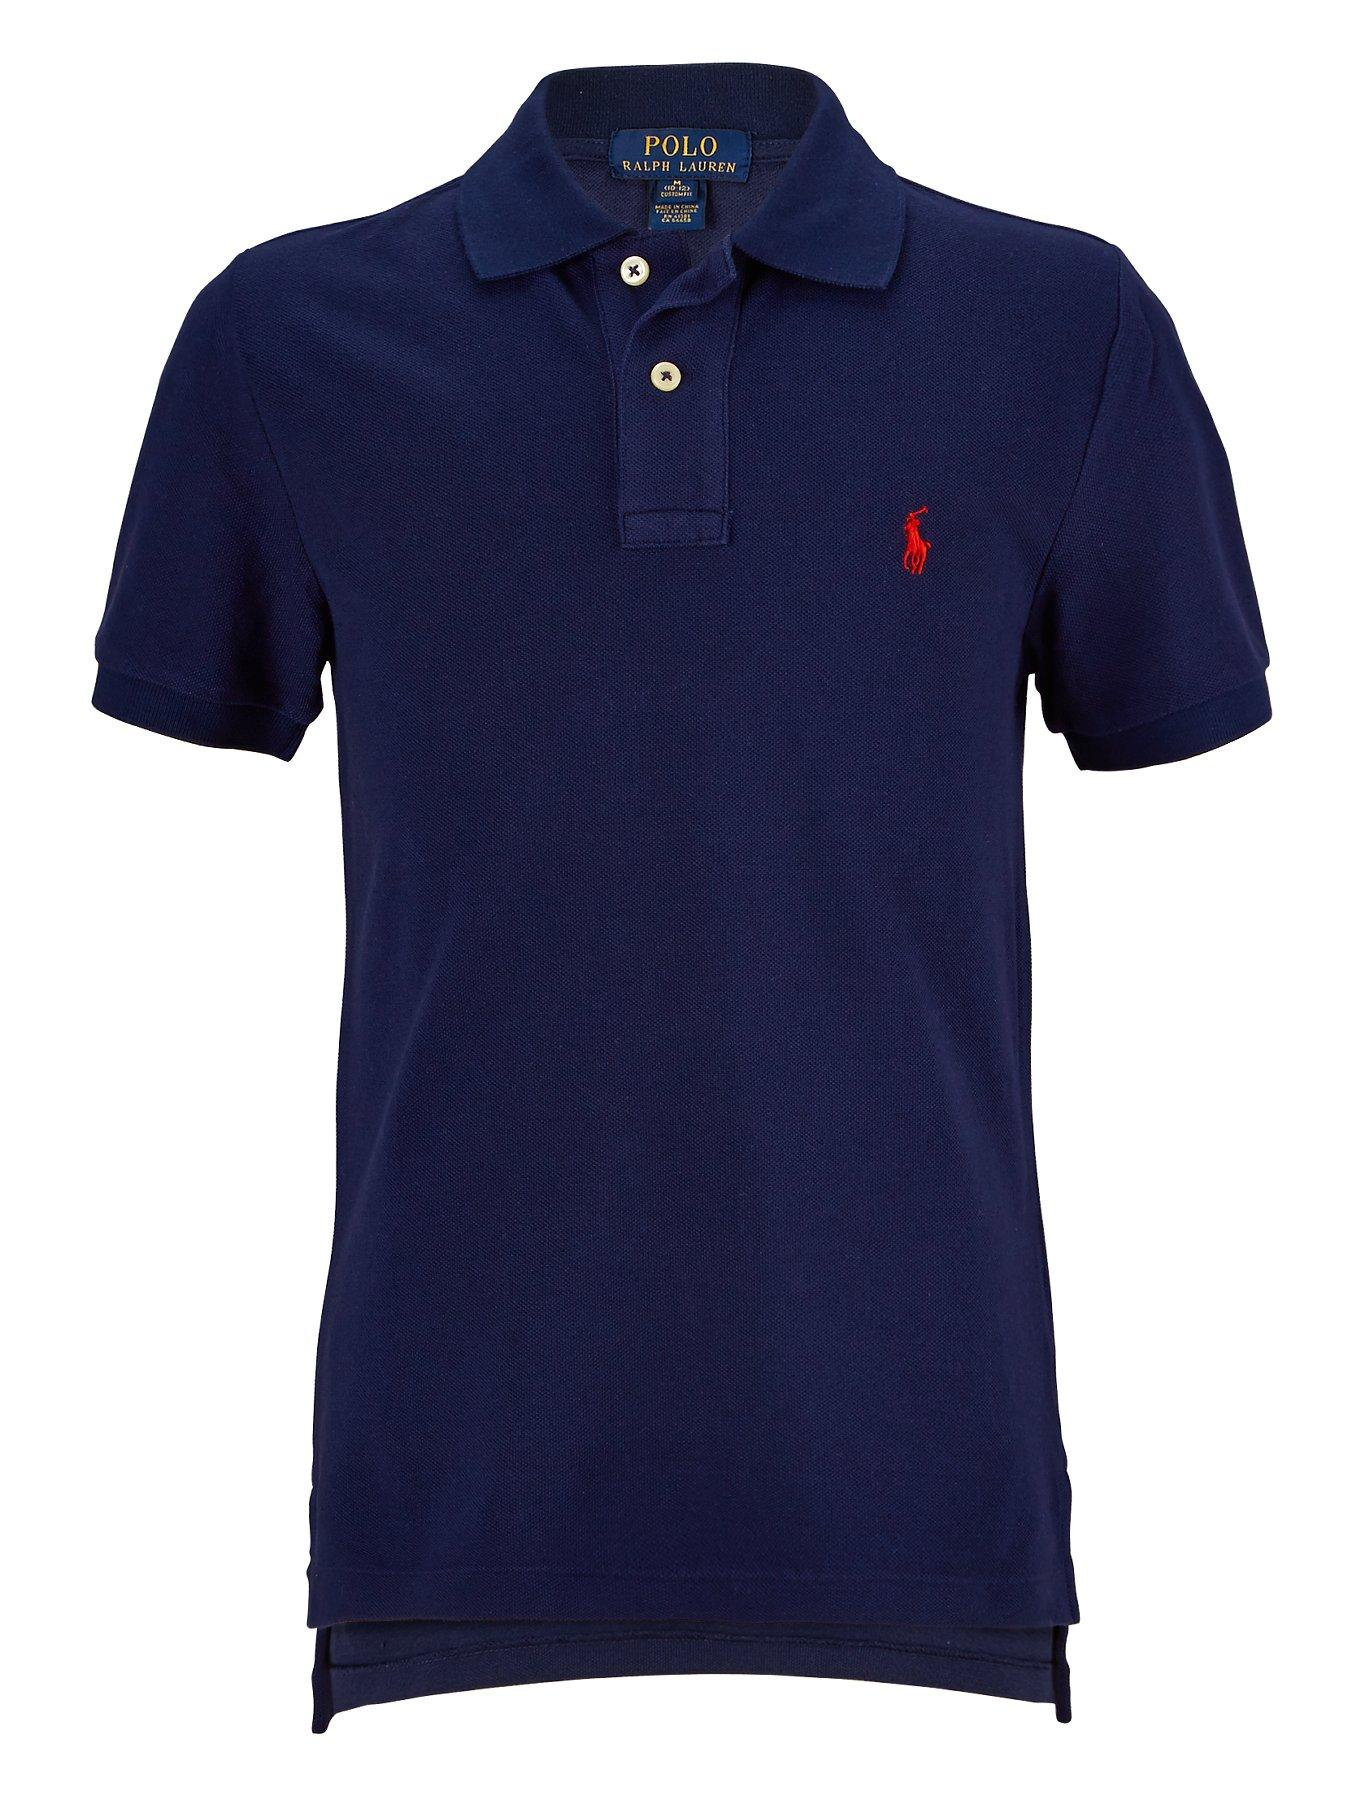 Polo ralph lauren t shirts boys the for Ralph lauren kids